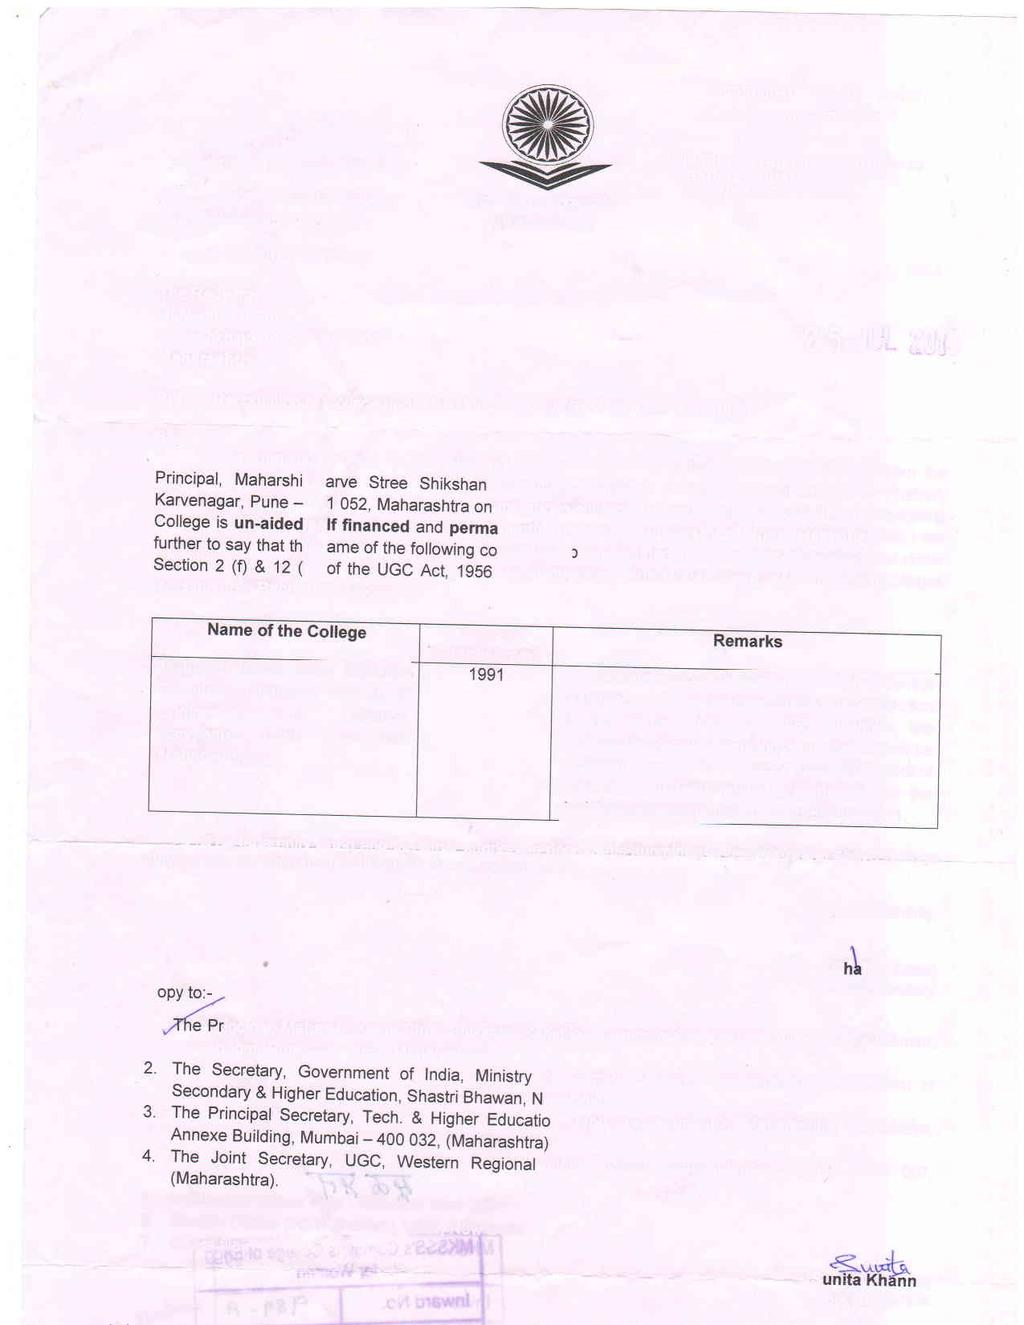 Self Study Report Ssr For Naac Accreditation Pdf Electric Rice Cooker Wiring Diagram Http Wwwtheietorg Forums Forum Ph 23236351 23232701 23237721 232341 R6 23235733 23232317 2 32 3